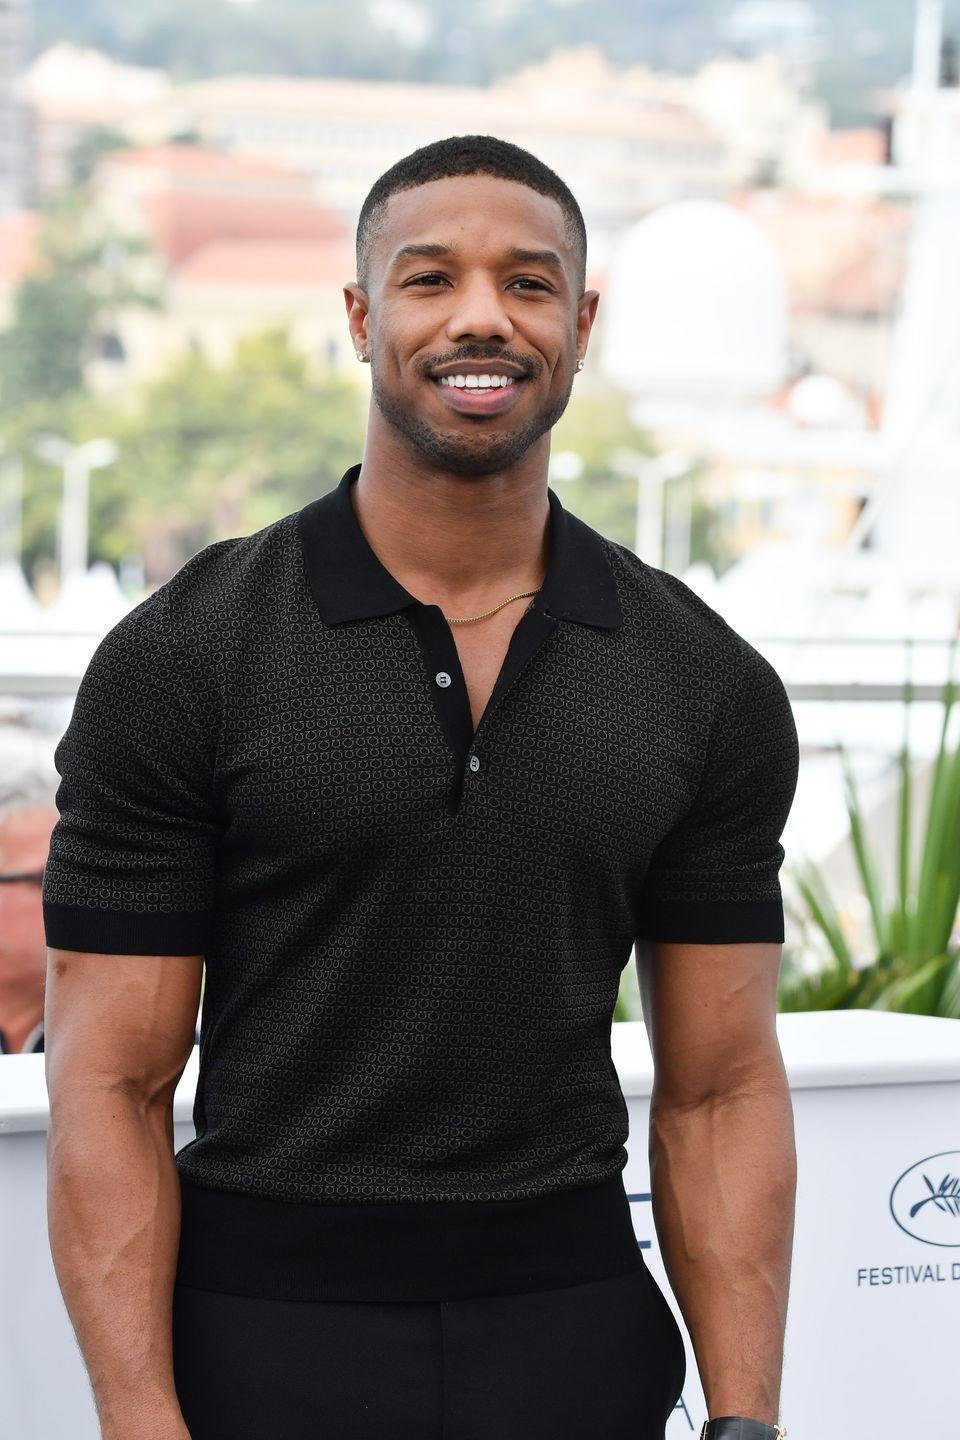 <p>Since then, Jordan has made a name for himself. He has starred in the <em>Creed</em> franchise with Sylvester Stallone, had a significant role in Marvel's <em>Black Panther</em>, and became a first-time producer while starring in <em>Just Mercy</em>. </p>